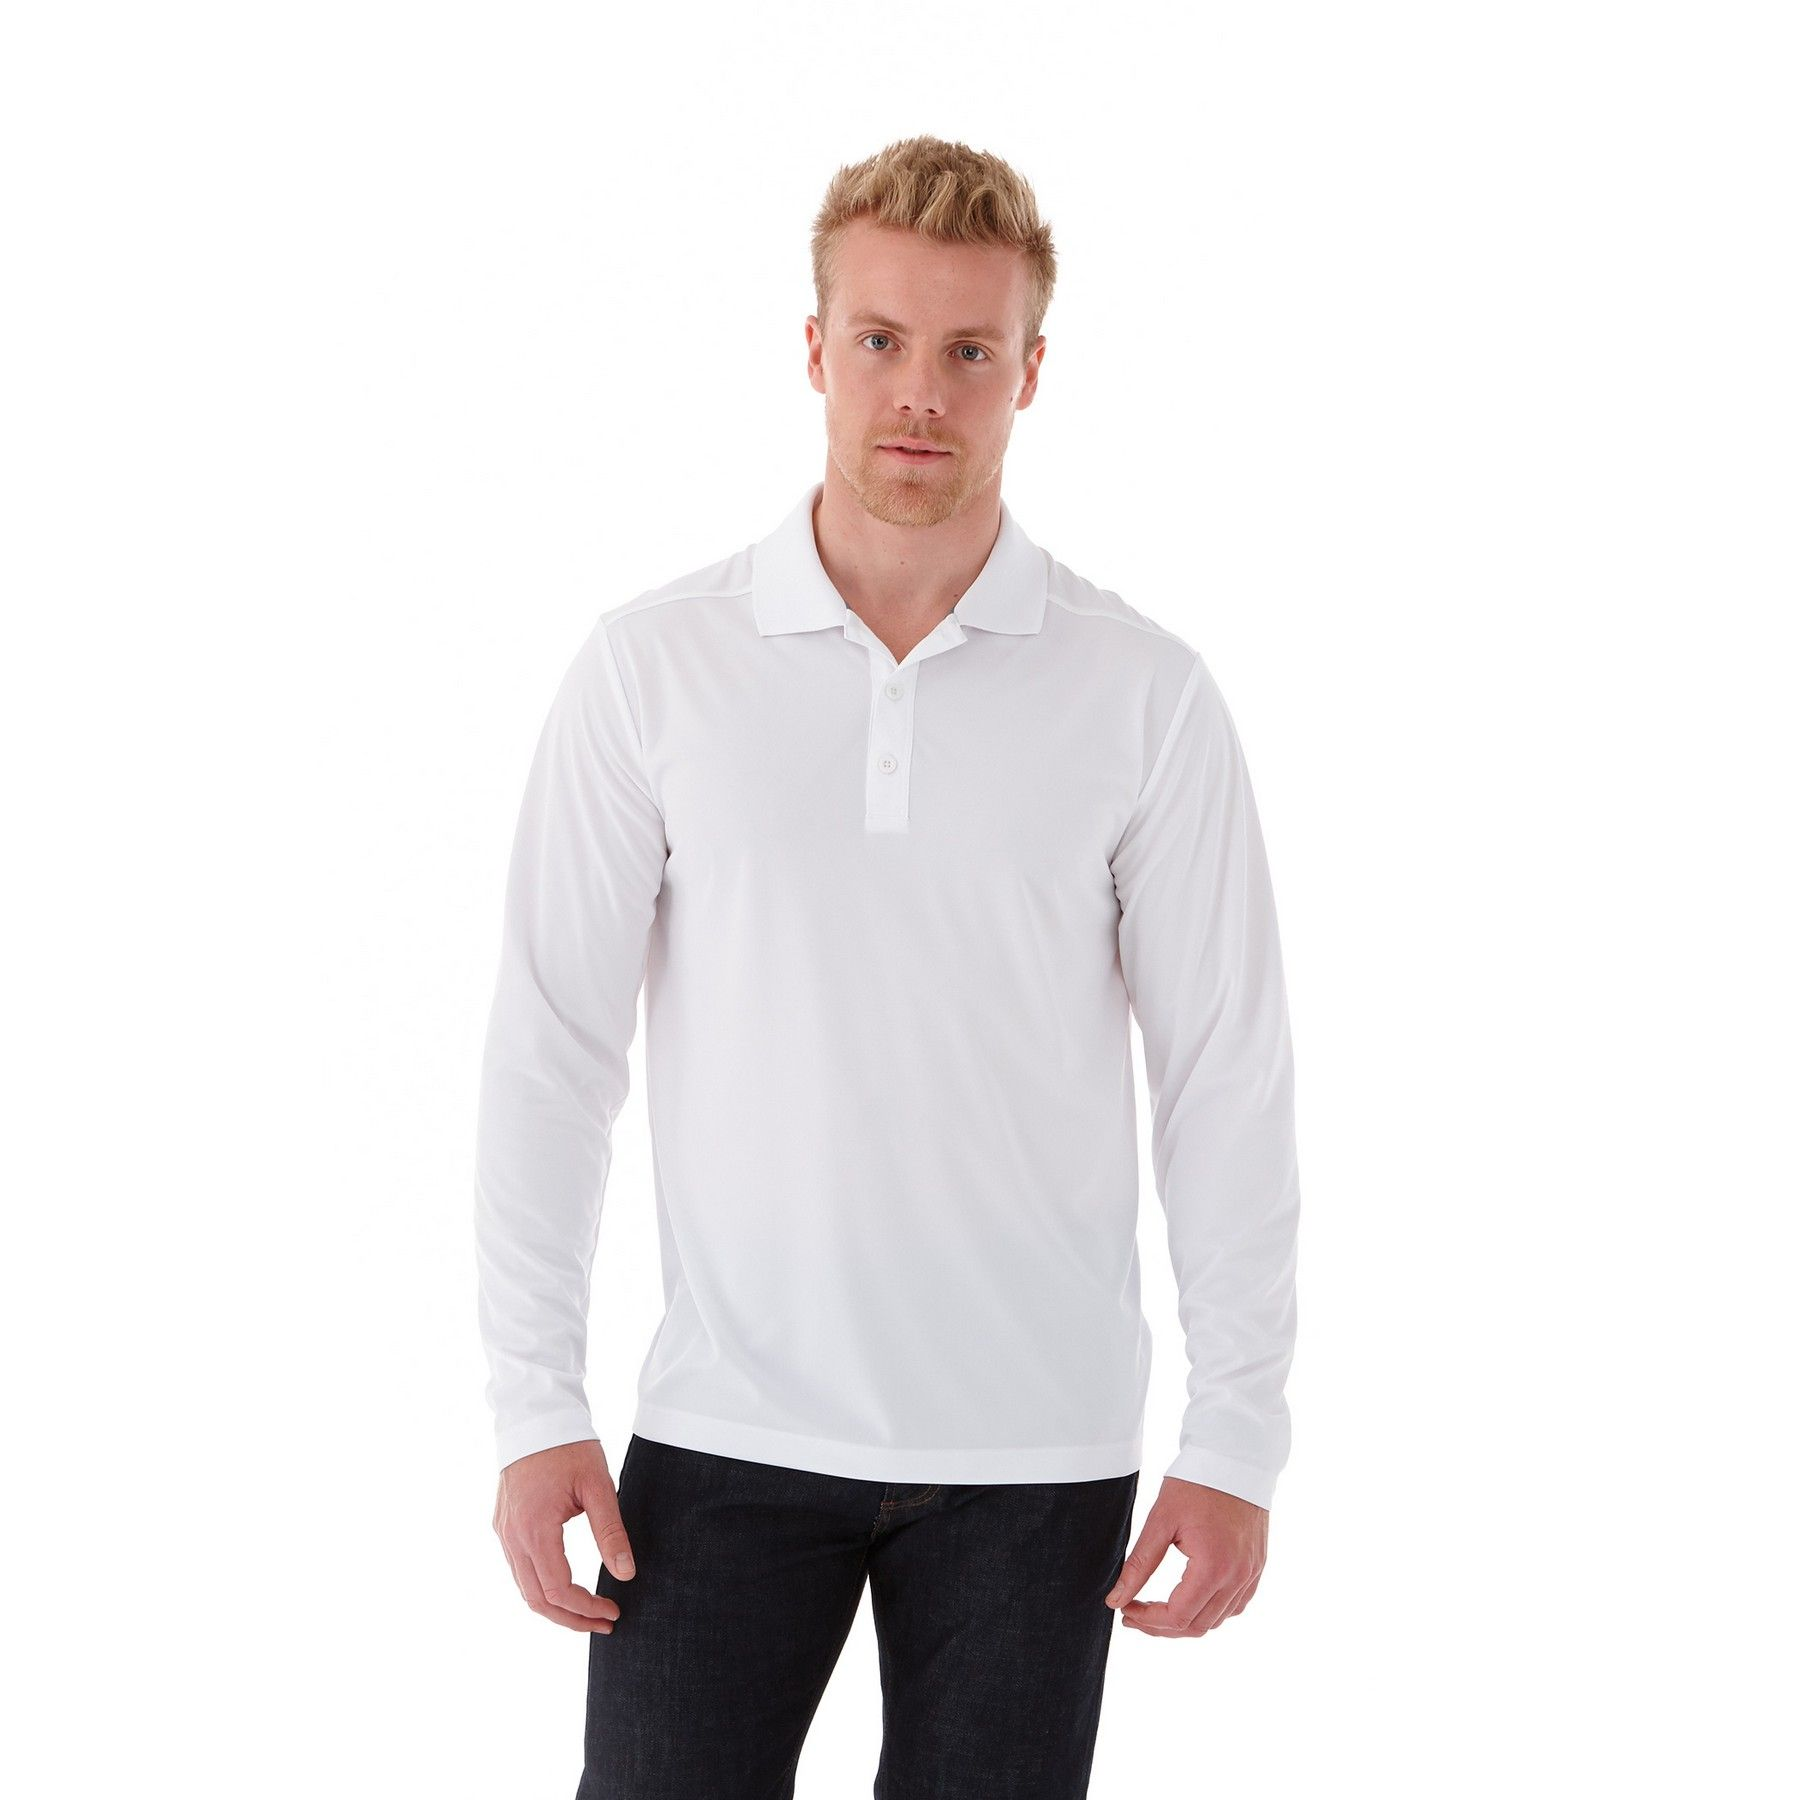 Mori Long Sleeve Men's Polo Shirt, #16255 - Embroidered